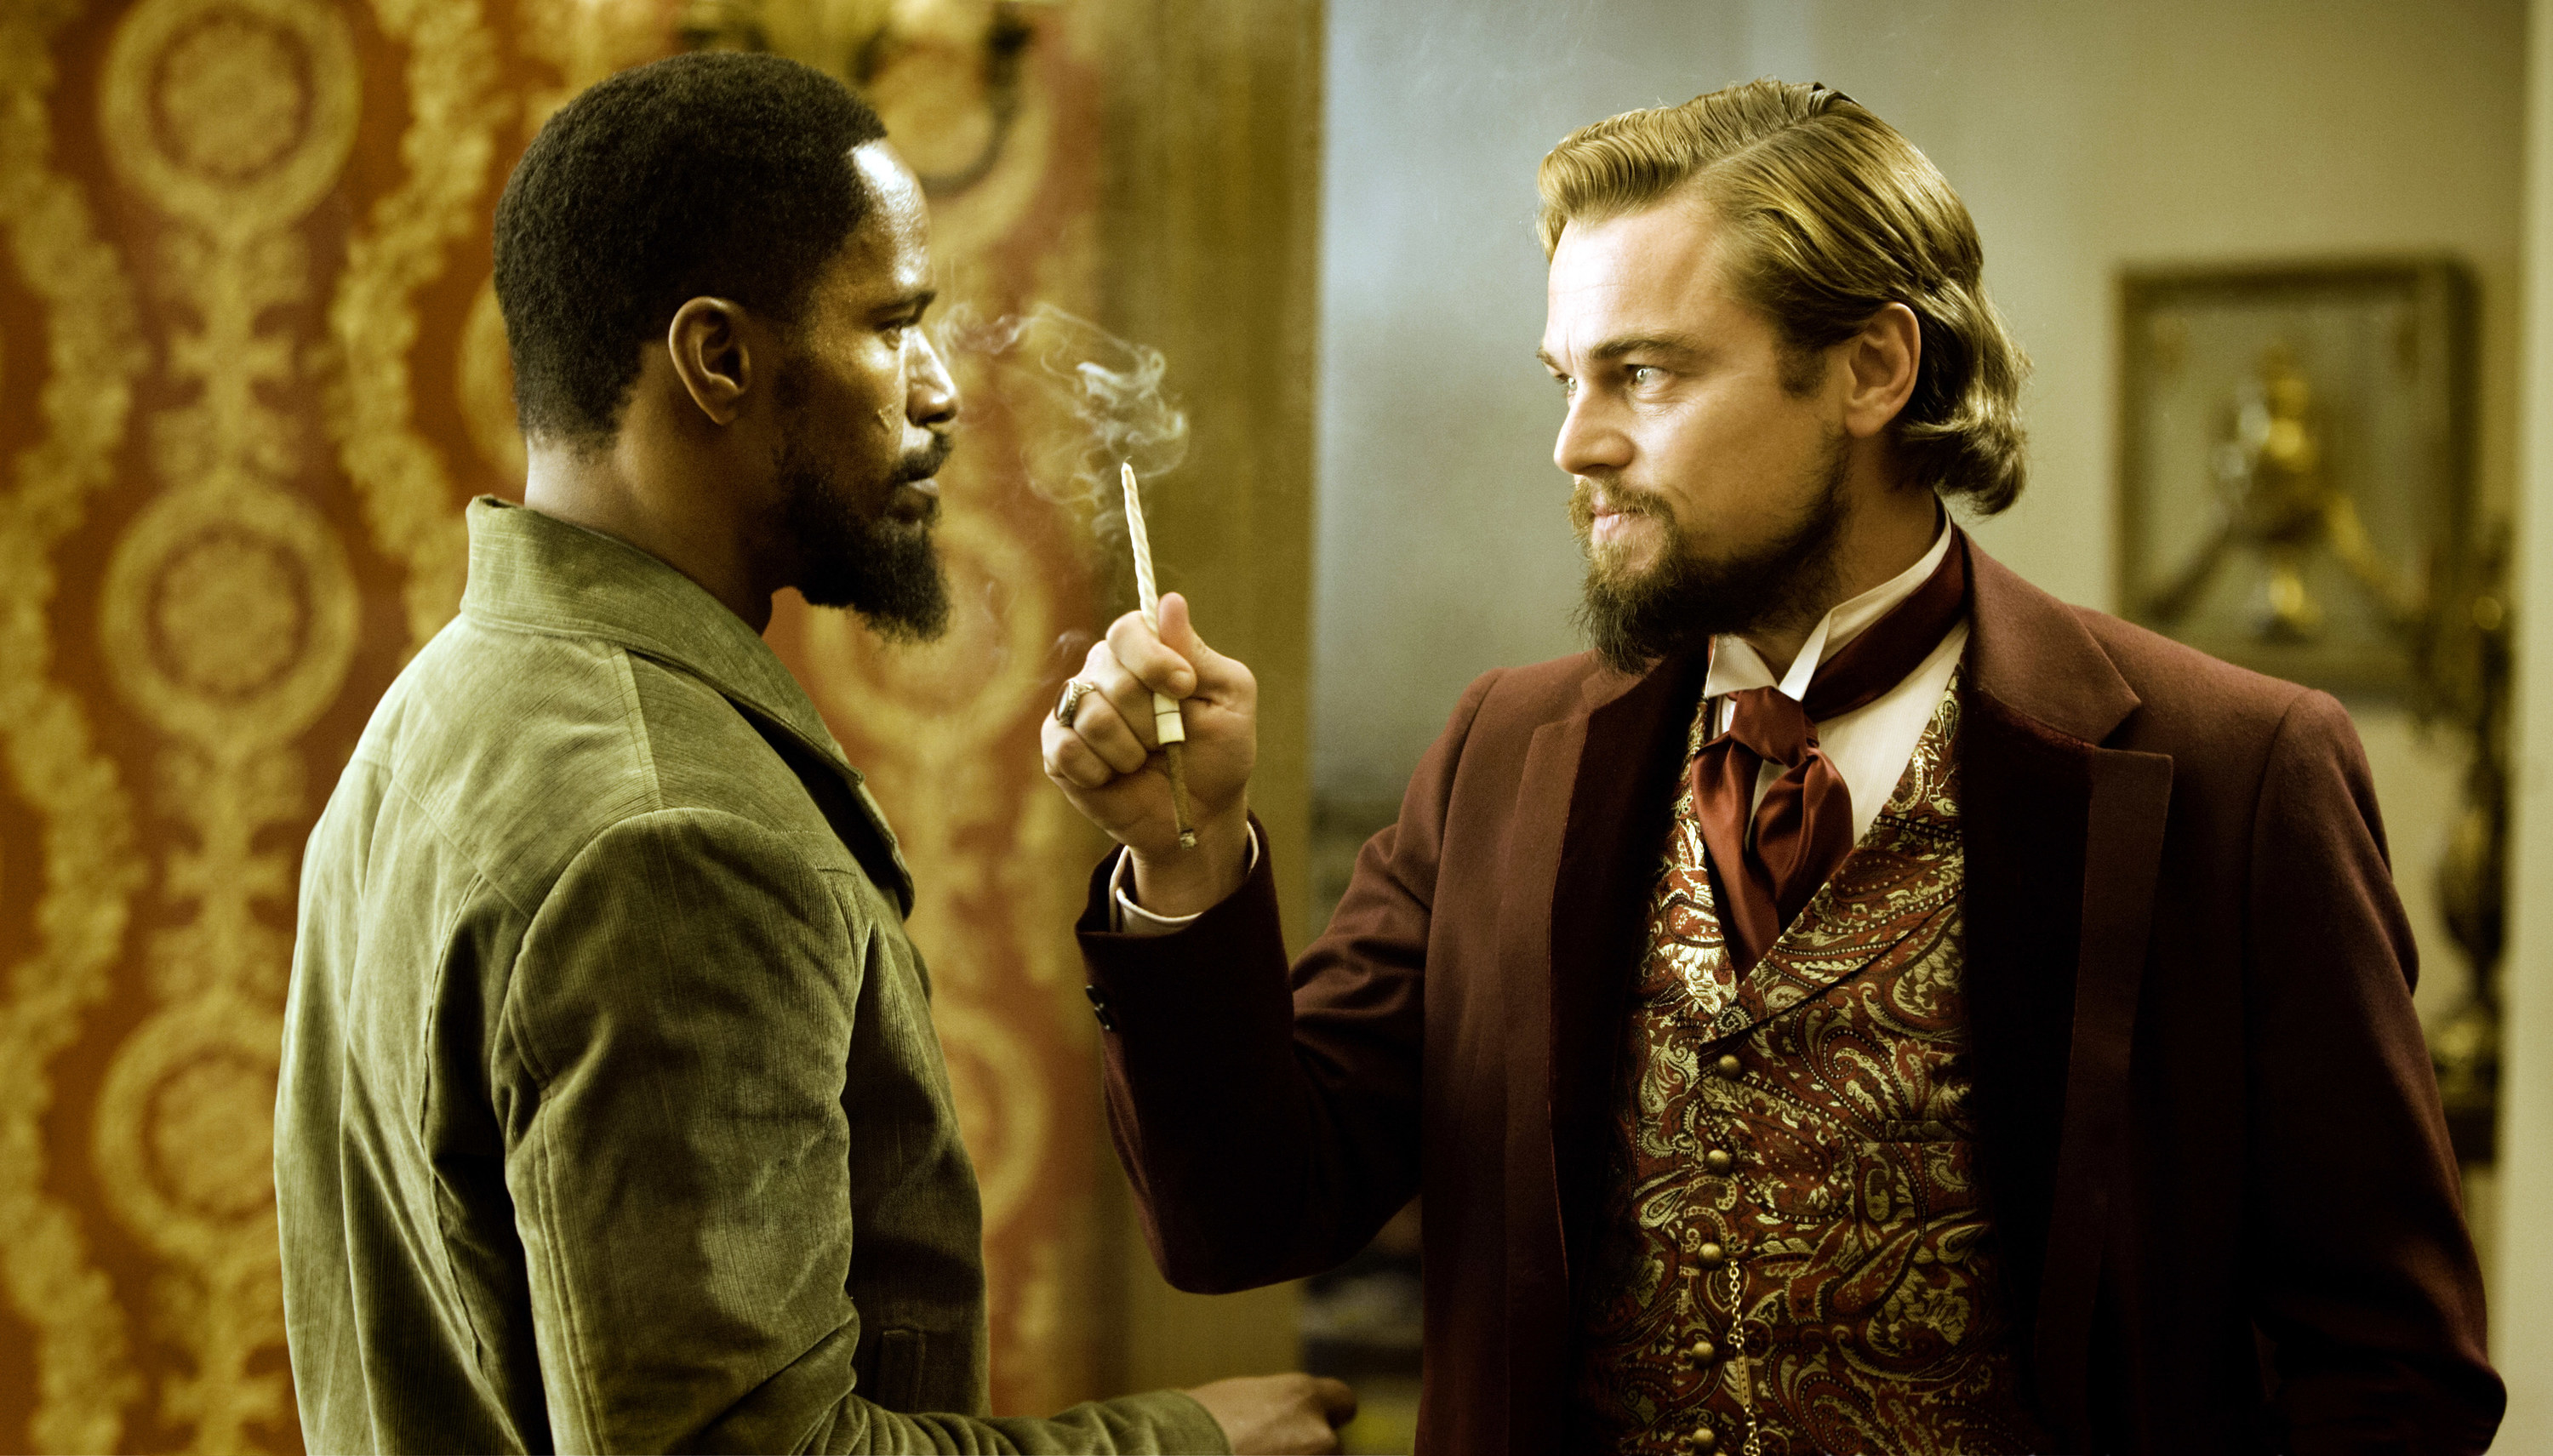 Jamie Foxx and Leonardo DiCaprio face off while in character